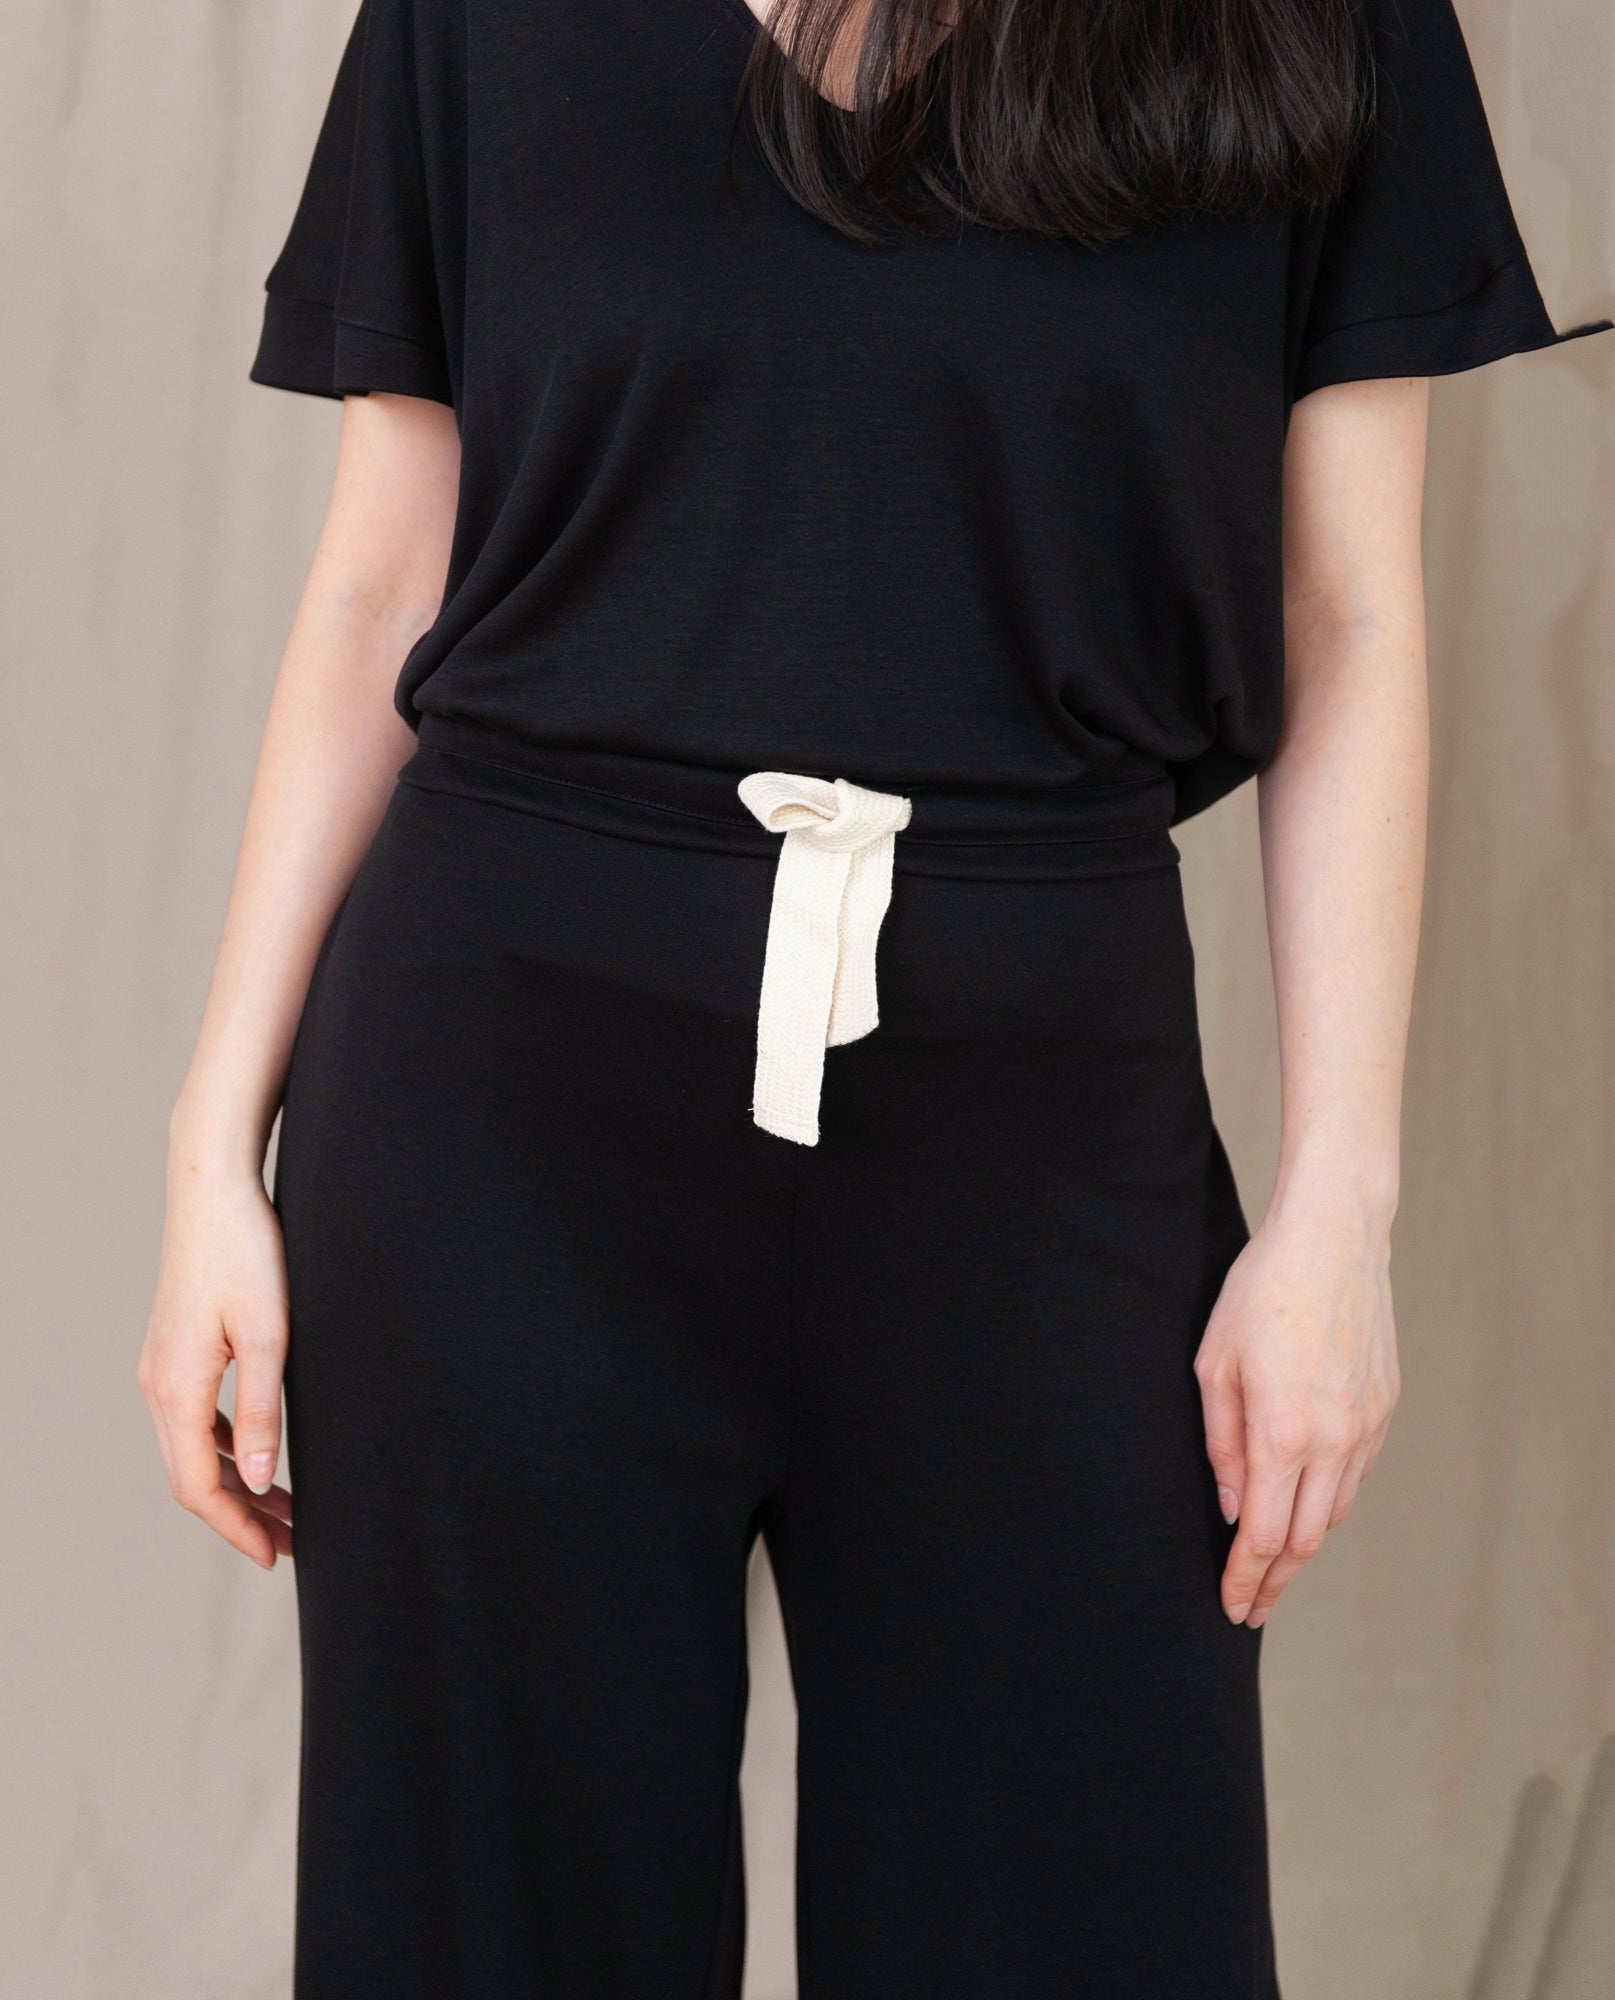 NICKY-LOU Lyocell And Cotton Trousers In Black